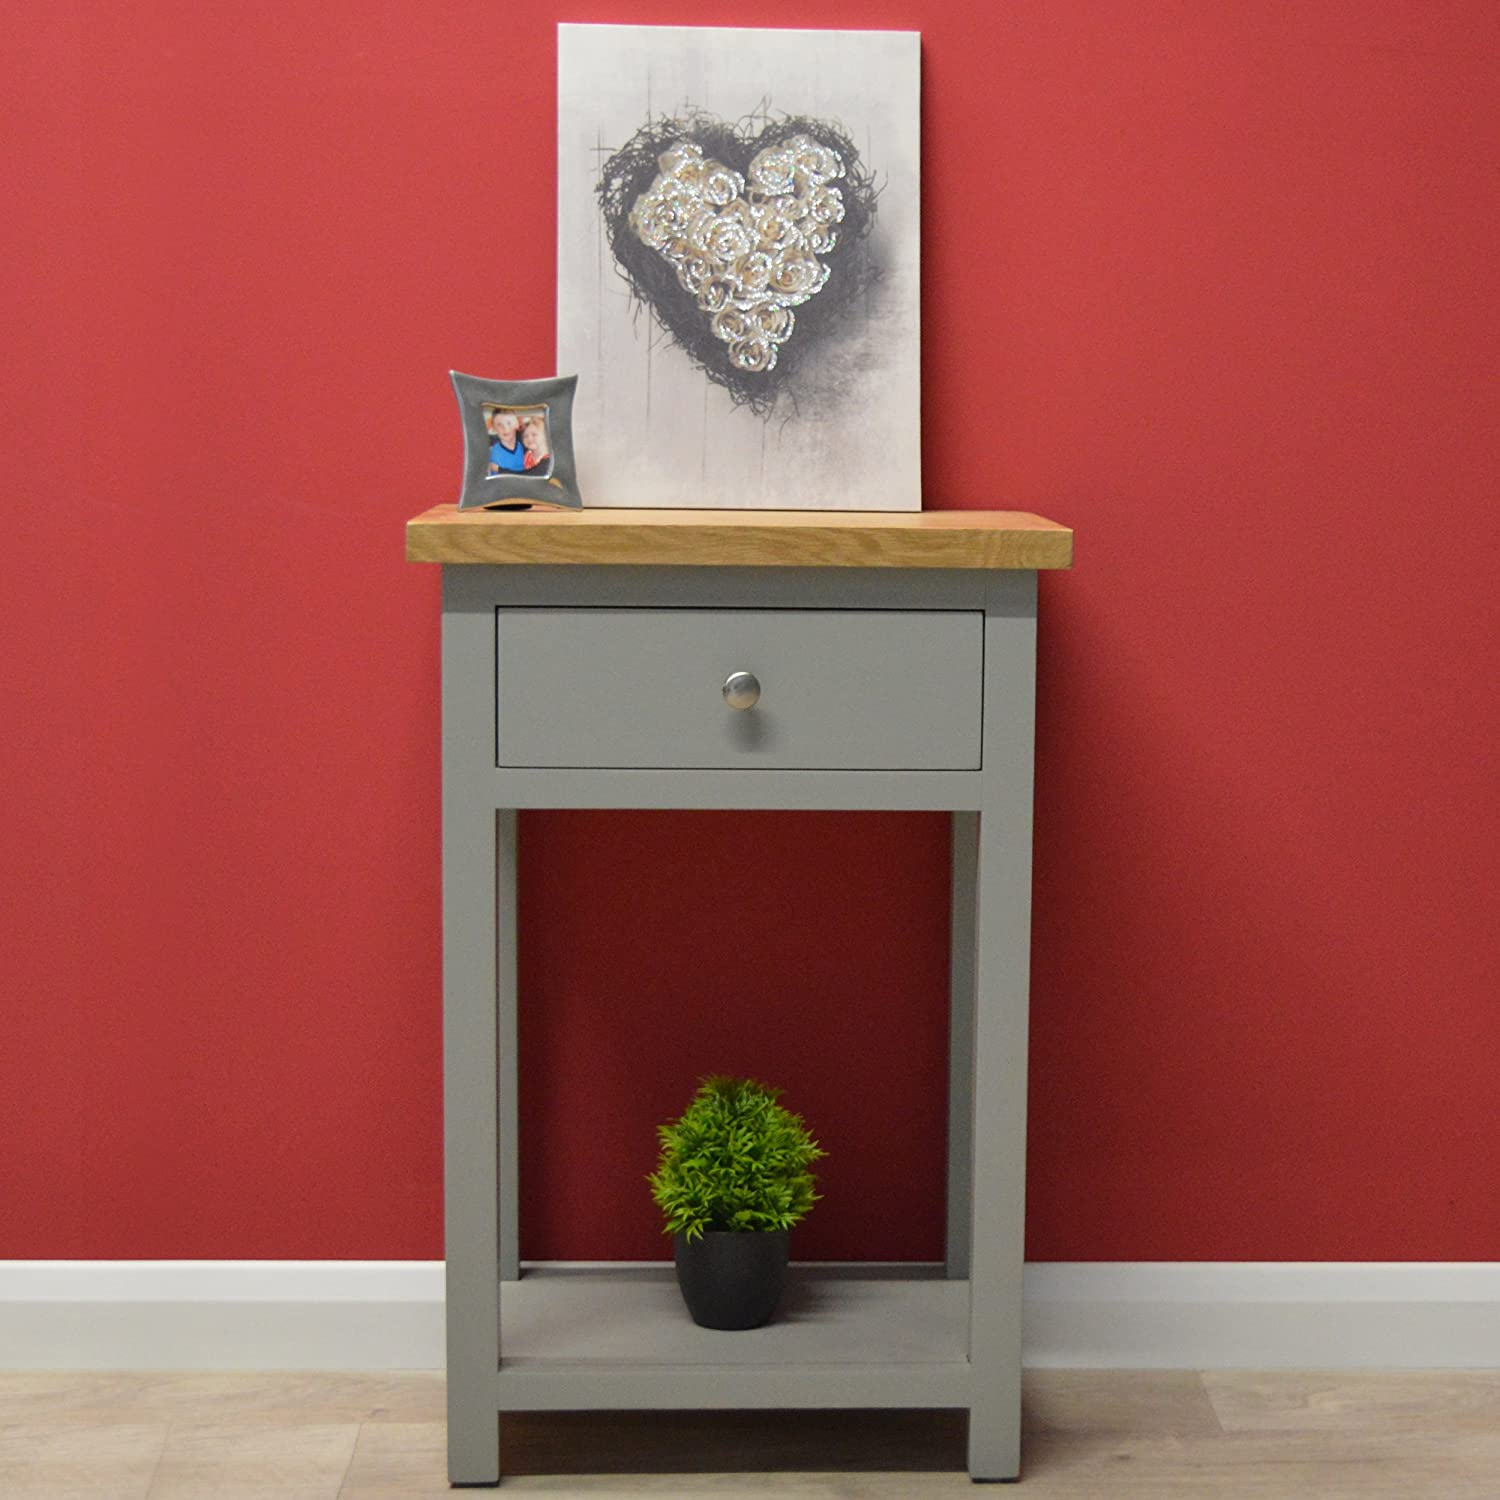 ae15deb7797b GREYSTOKE PAINTED GREY OAK SMALL CONSOLE TABLE HALL TABLE SOLID WOOD TELEPHONE  TABLE larger image